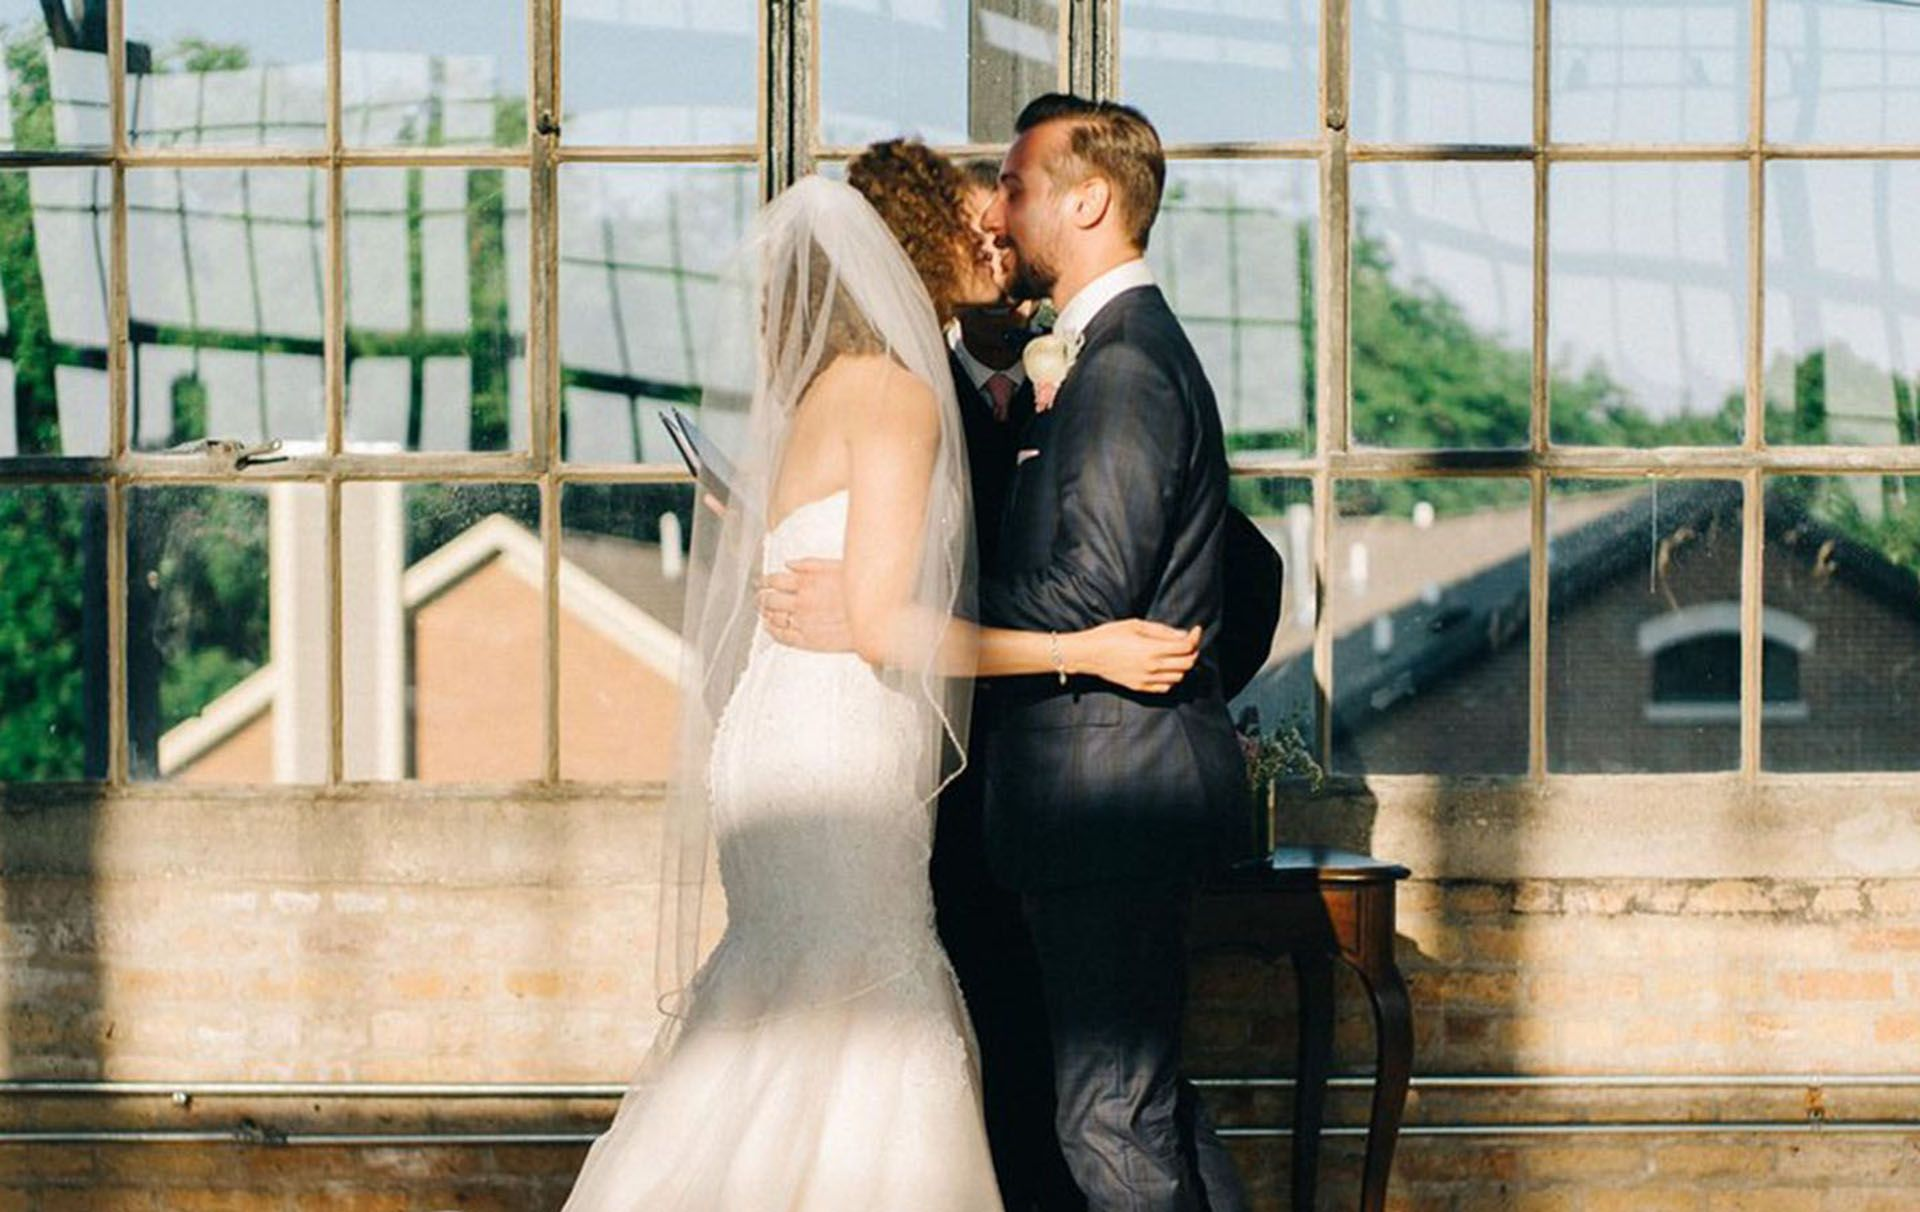 This couple's wedding photo has gone viral but can you